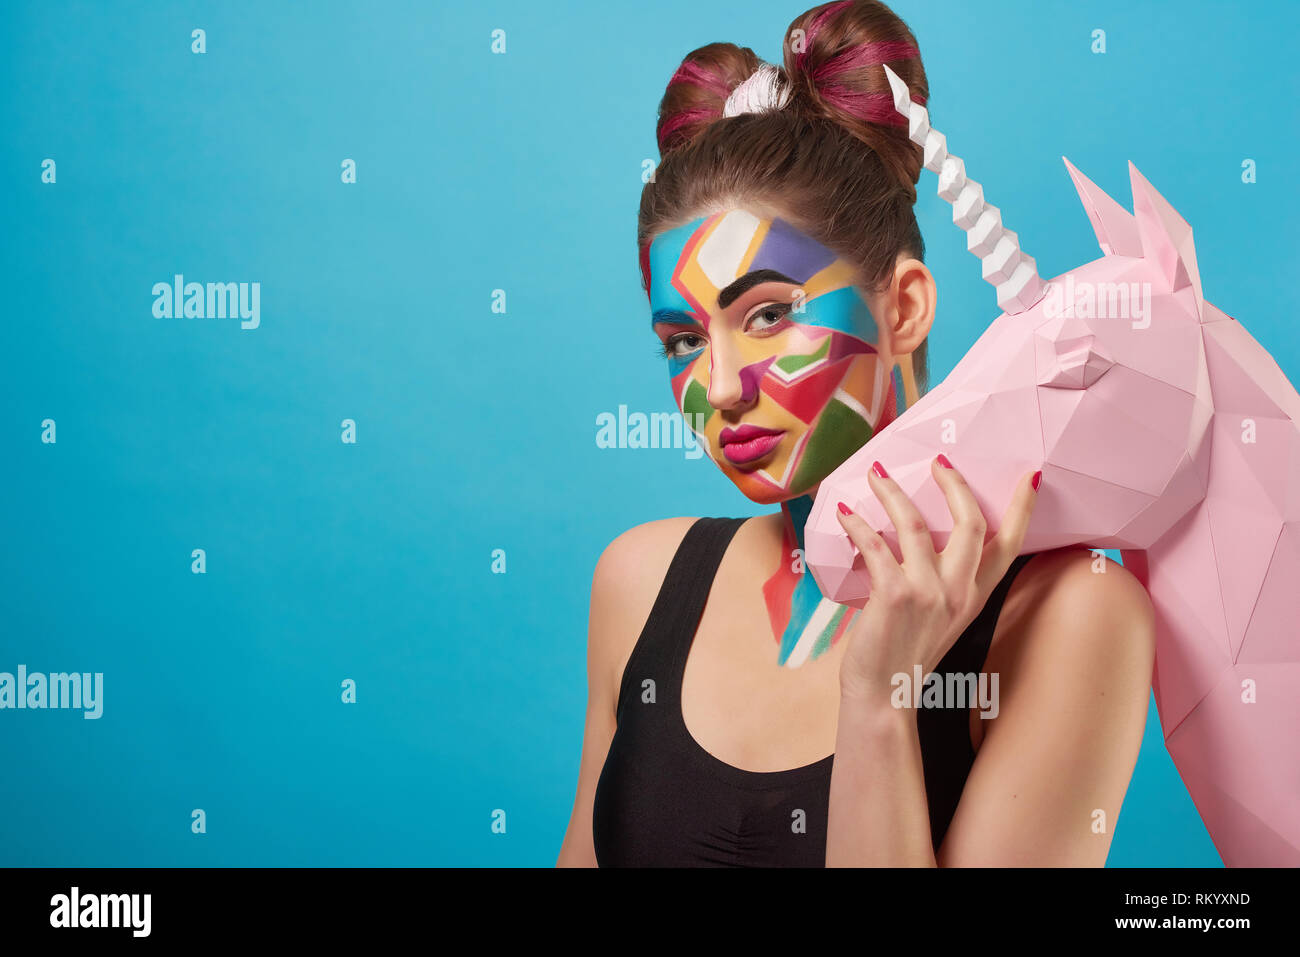 Porträt der Schönen model posing, an der Kamera schaut. Bezaubernde Frau die Hand auf 3D-Papier Einhorn Kopf. Funky girl hat Pop Art kreativ Make-up. Papercraft Konzept. Stockbild